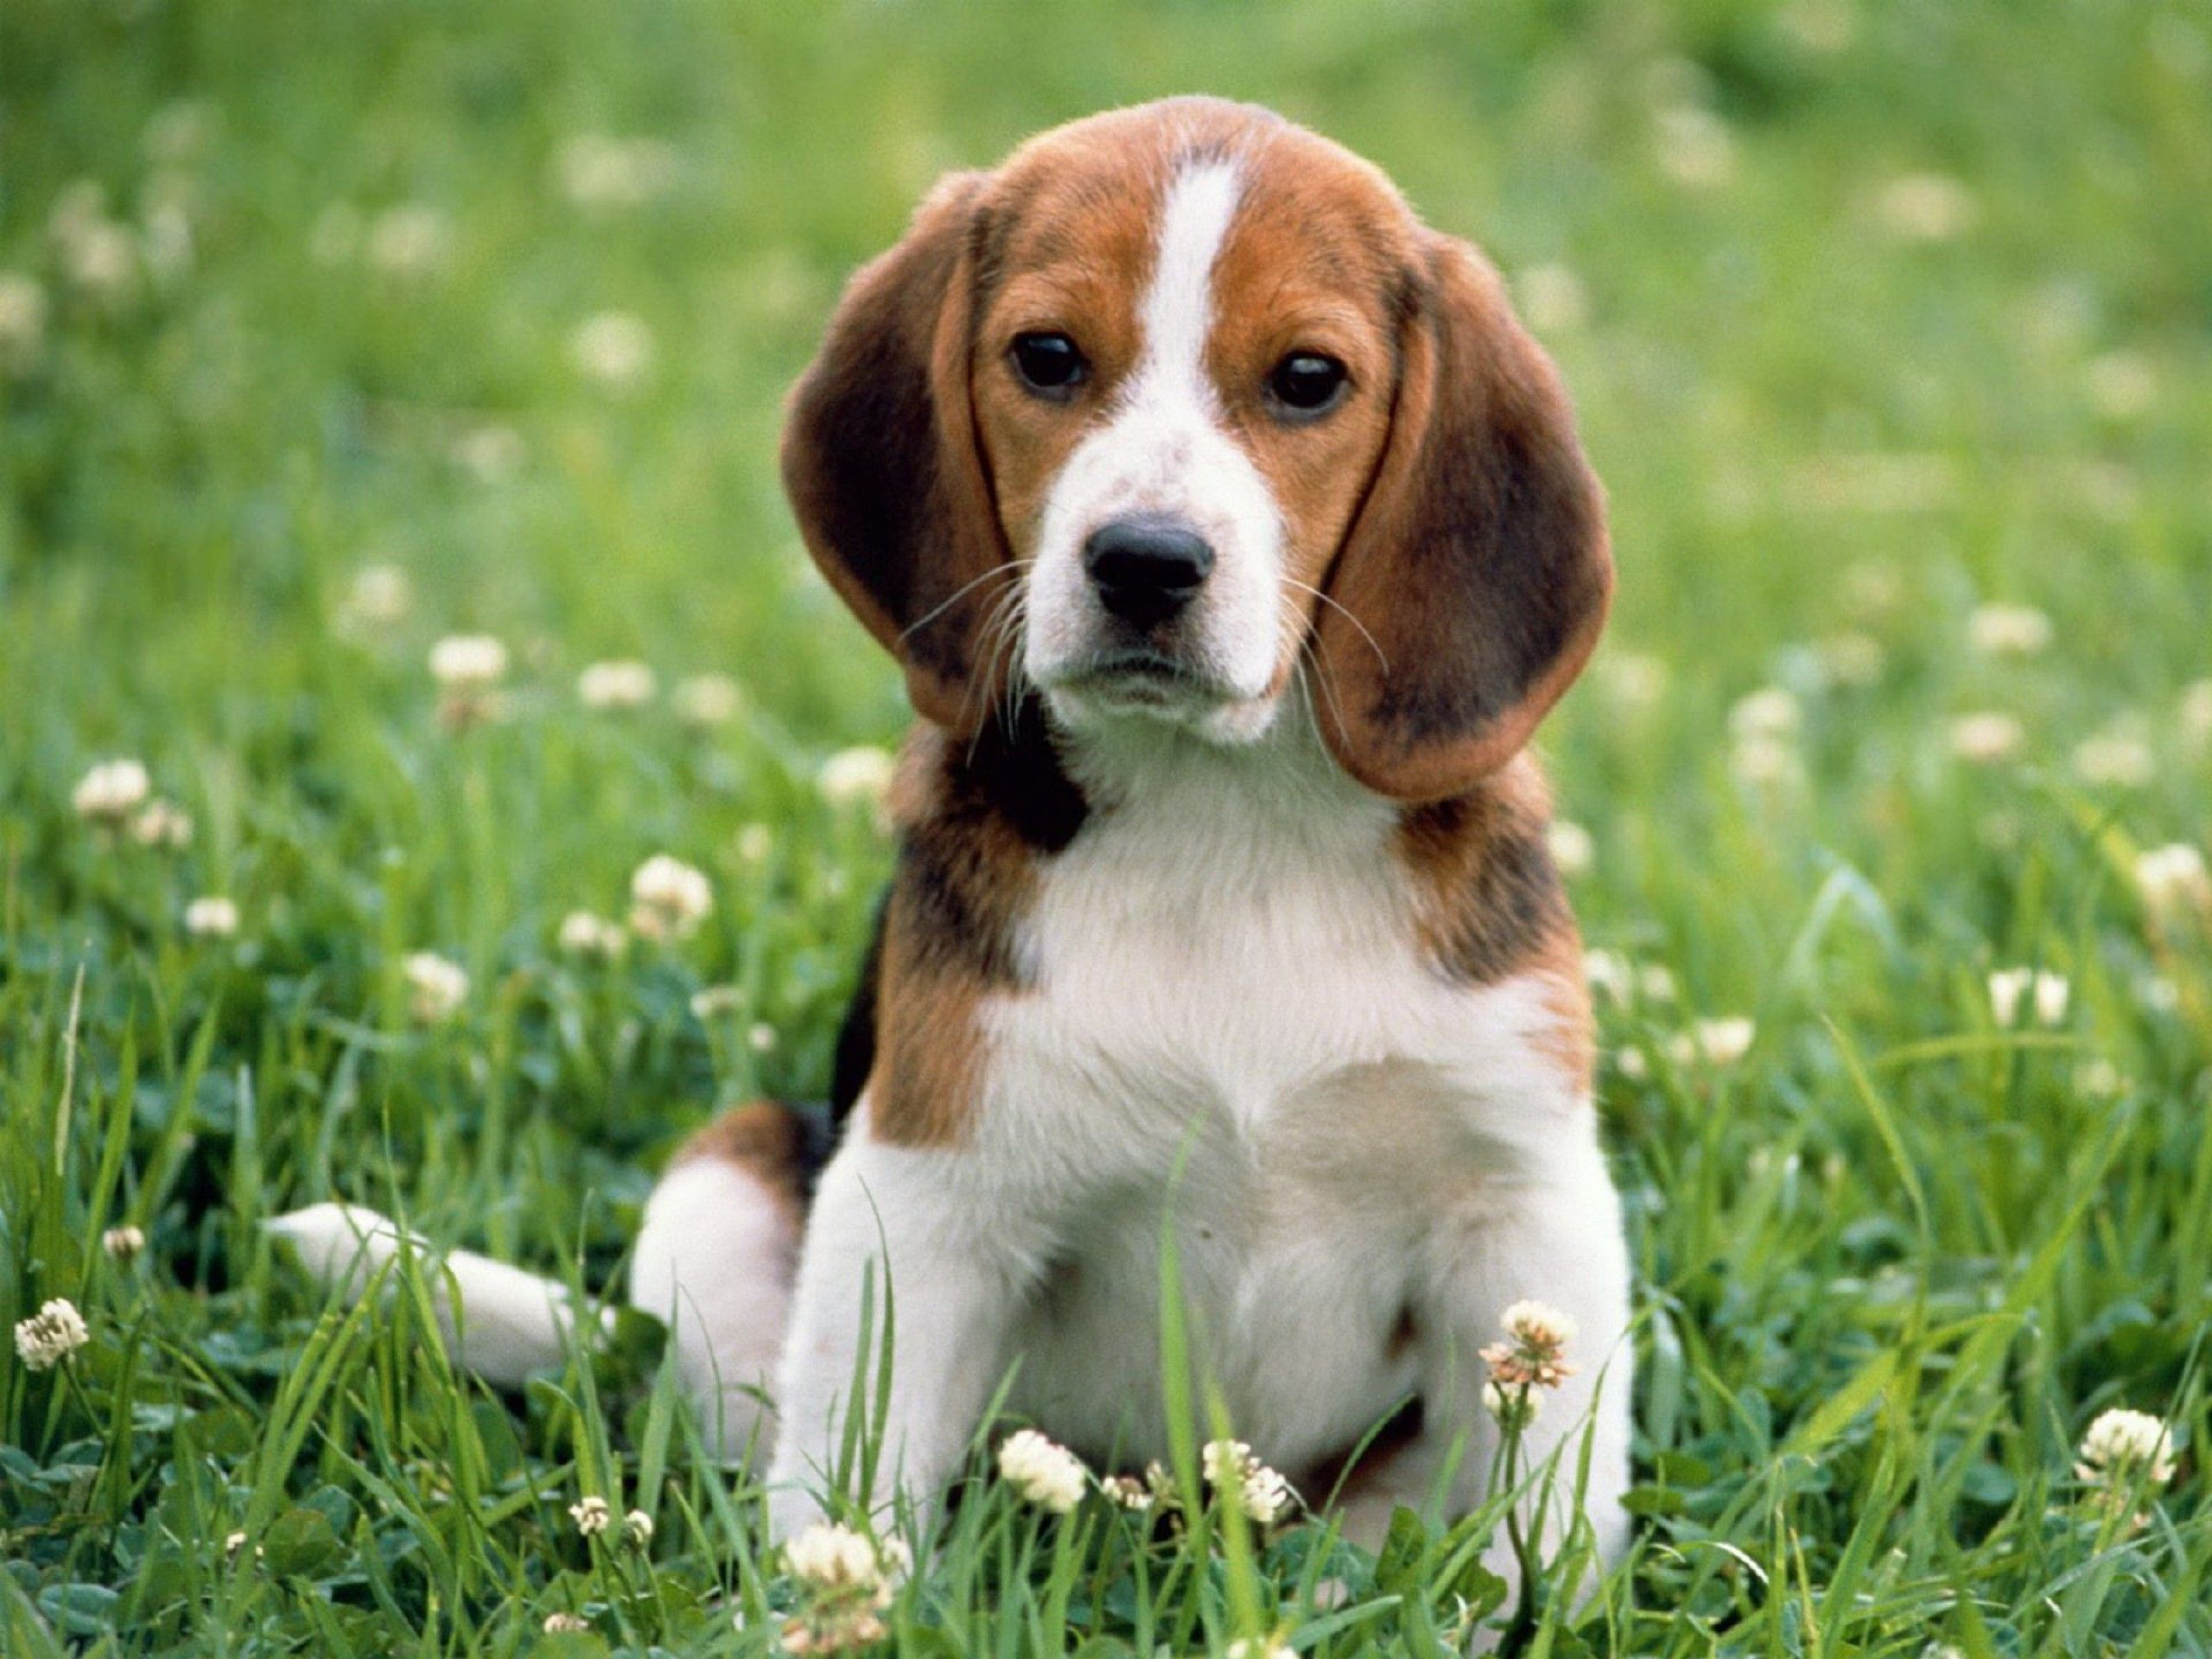 Cute Beagle Puppy Beagle Dog Breed Cute Beagles Beagle Puppy